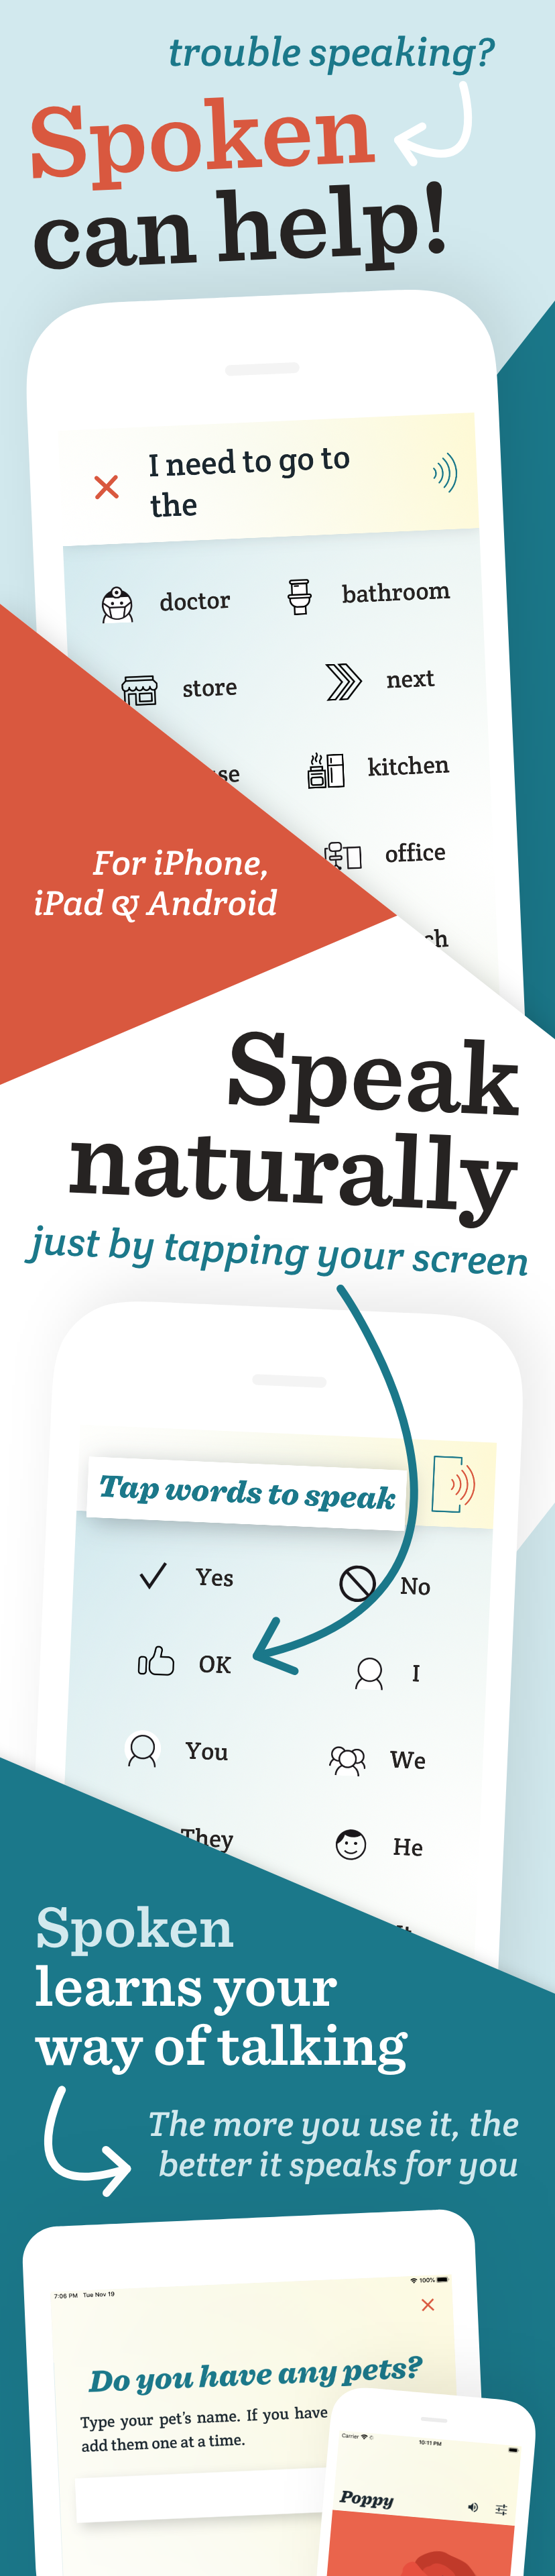 Trouble speaking? Spoken can help! Speak naturally! Just by tapping your screen.Spoken learns your way of talking.